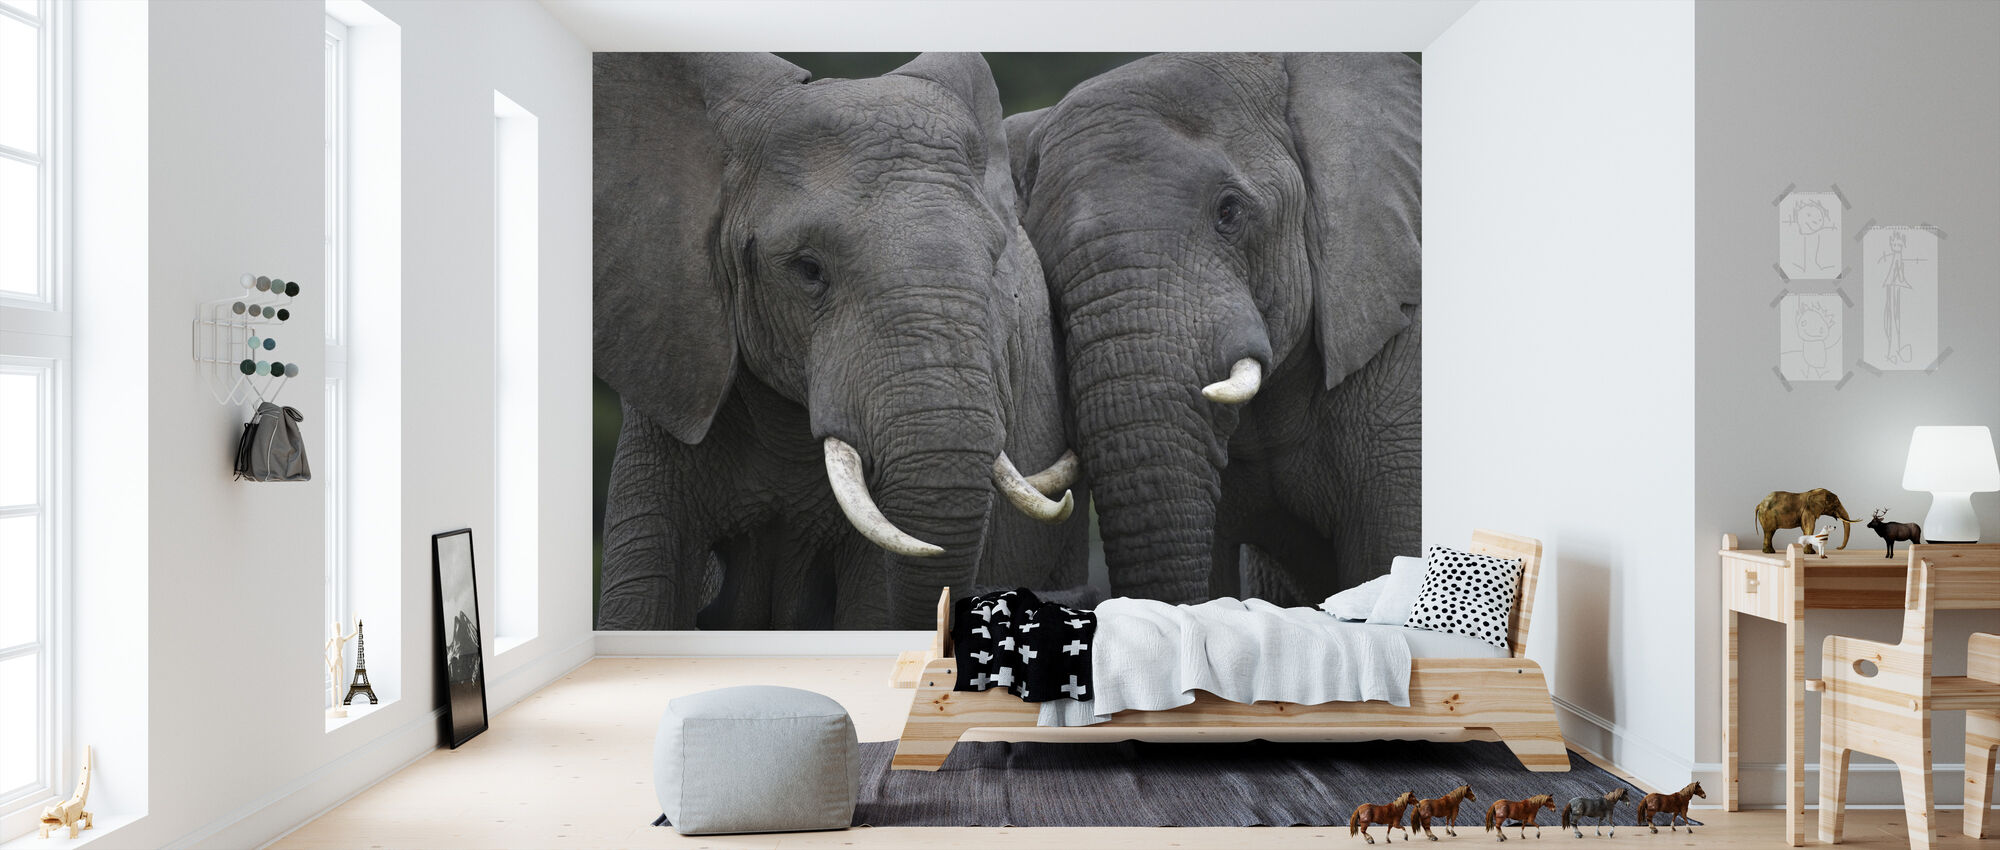 Friendly Elephants - Wallpaper - Kids Room